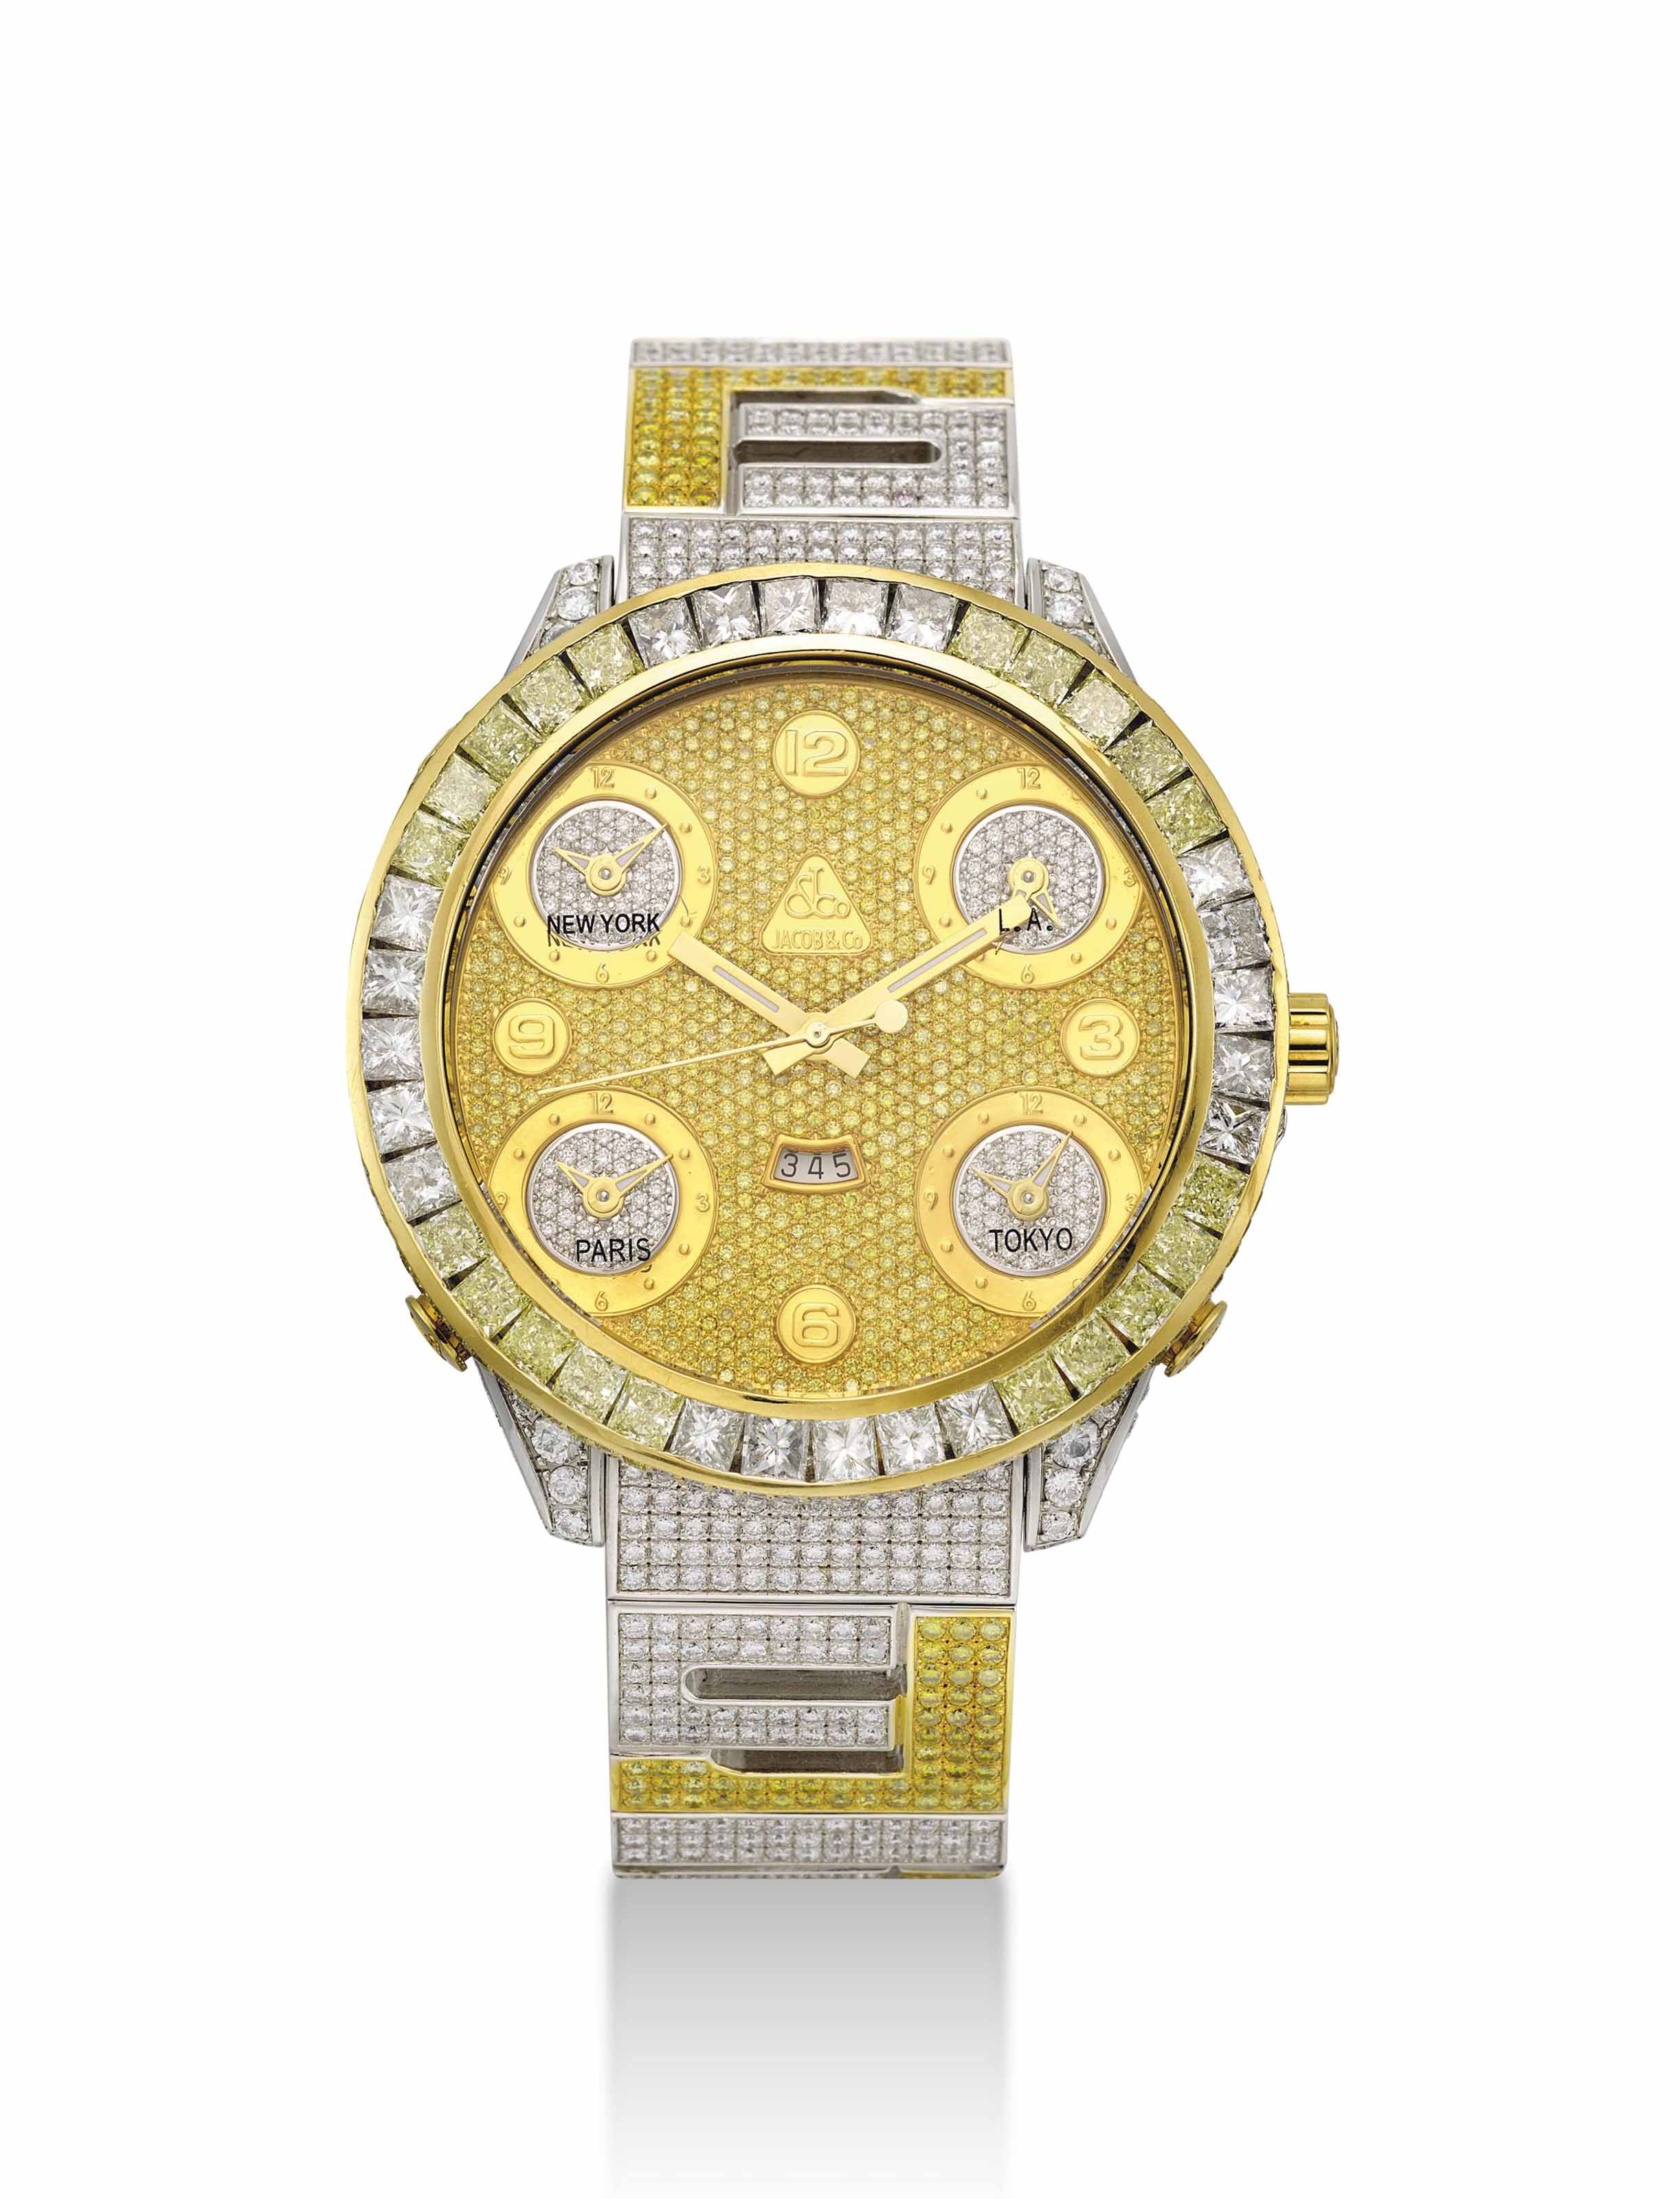 JACOB & CO. A LARGE 18K WHITE GOLD, YELLOW DIAMOND AND DIAMOND-SET WRISTWATCH WITH SWEEP CENTRE SECONDS, DATE AND BRACELET